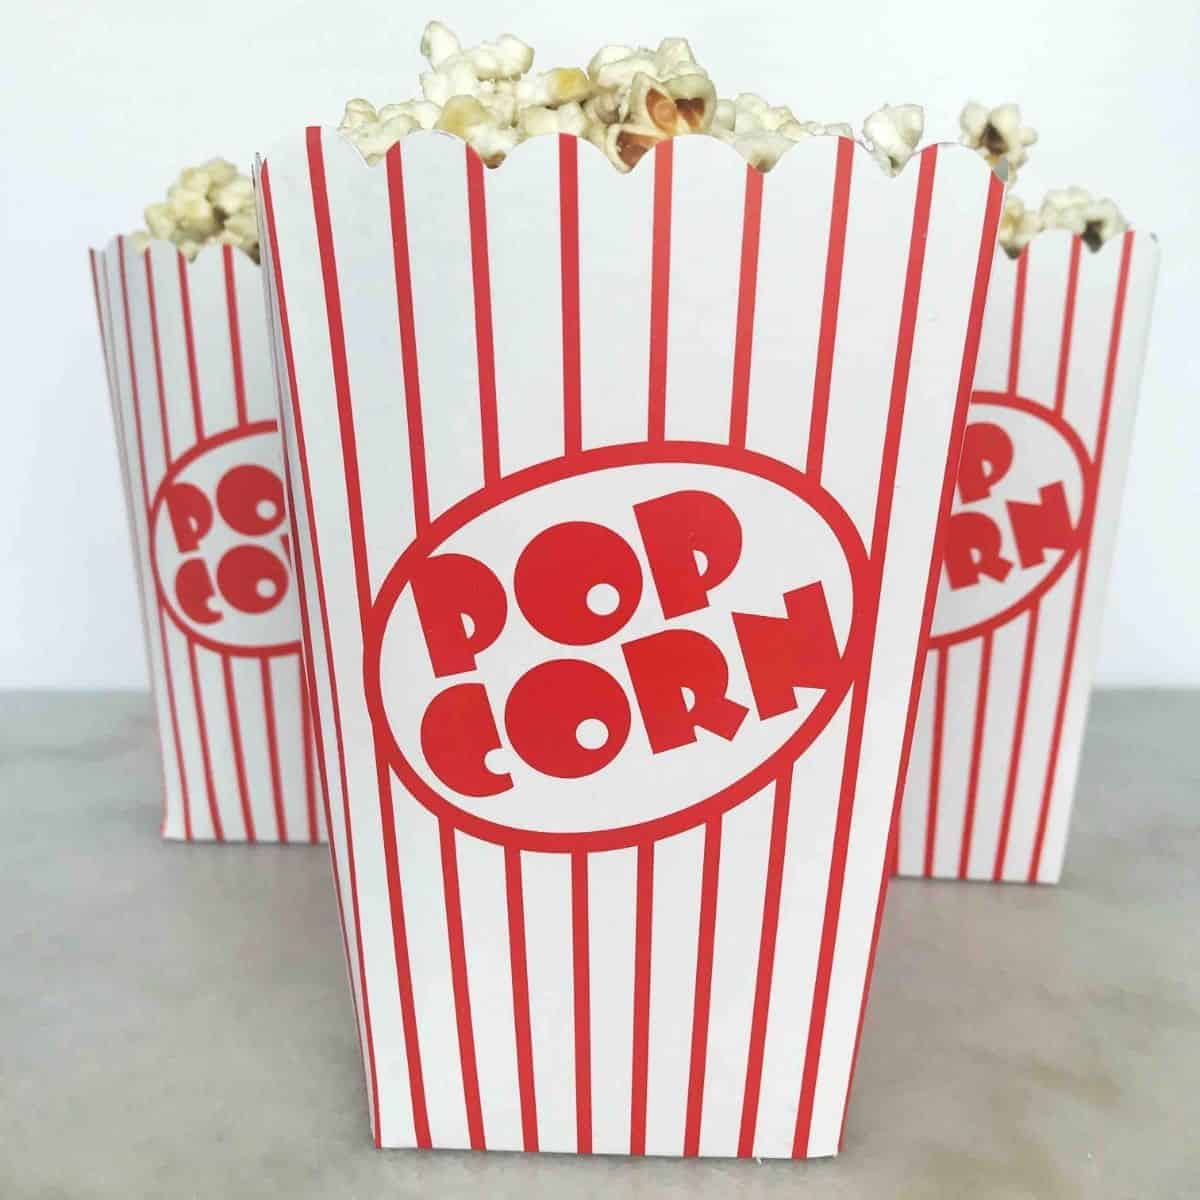 red and white striped popcorn containers in triangle shape.